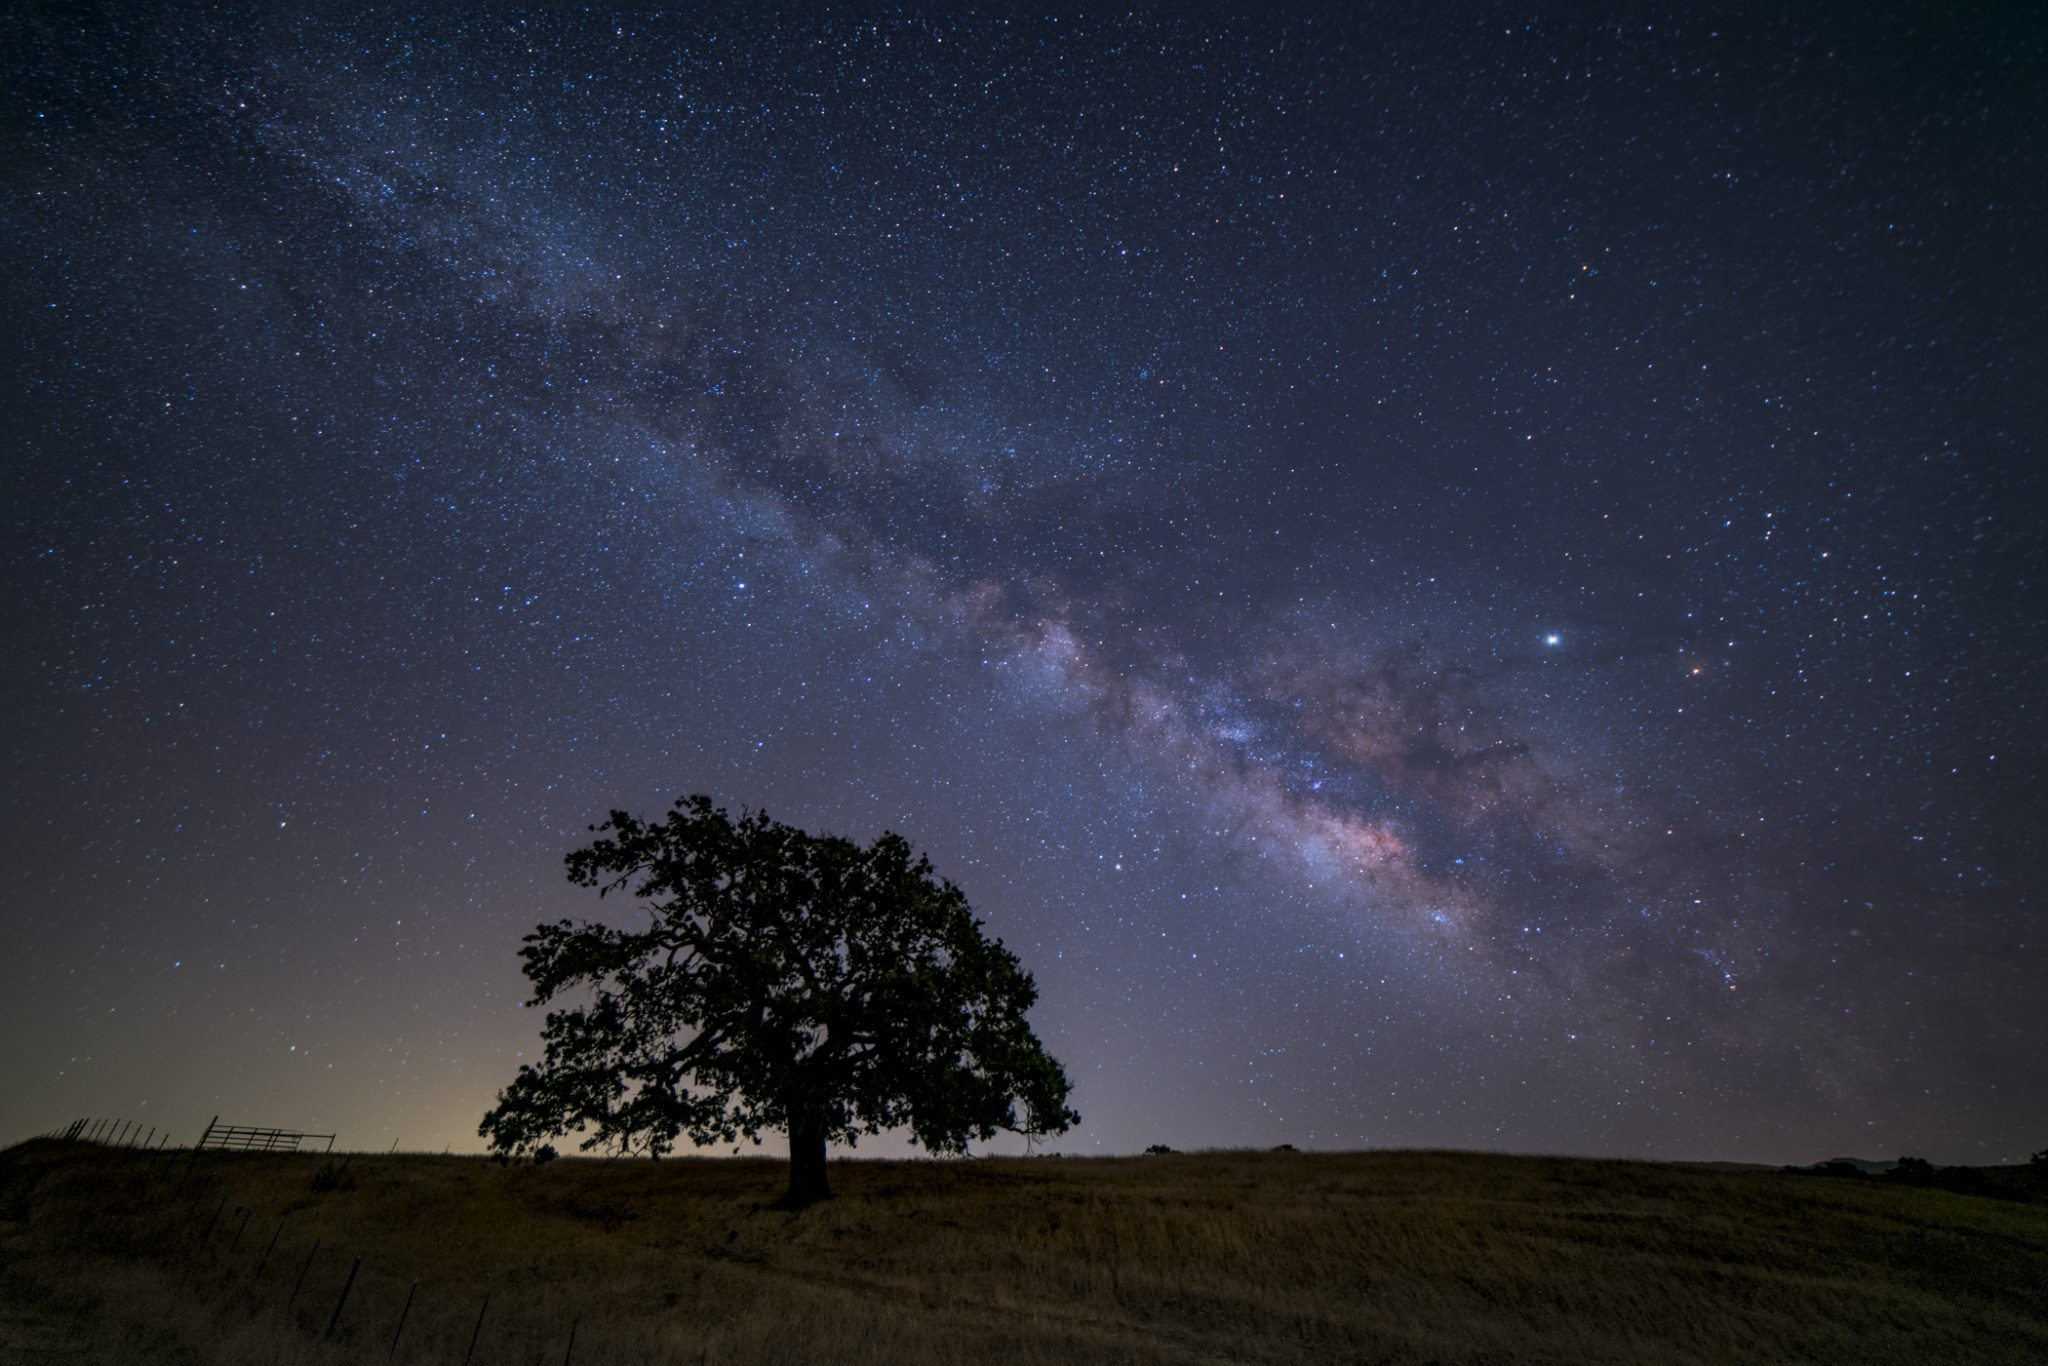 Thomson-Lindsay_Milky Way Over Oak Tree-Photo-12x18